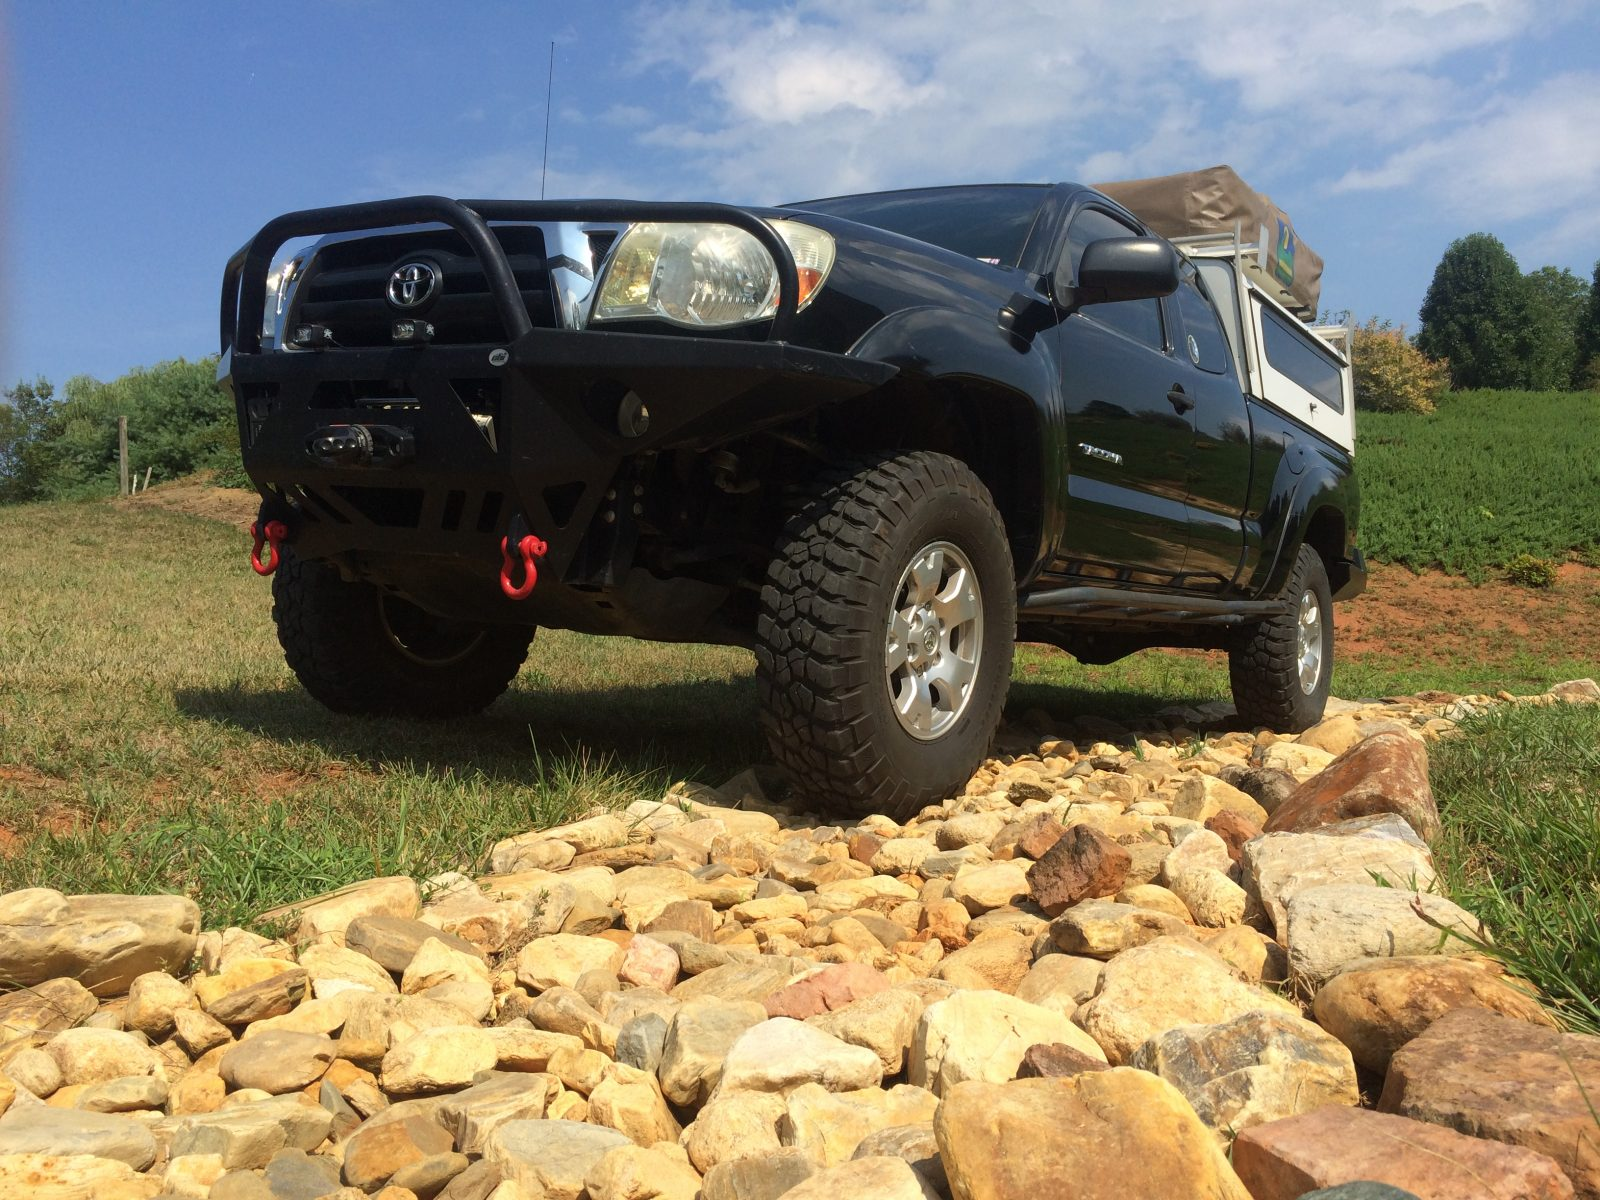 Toyota Tacoma, front view